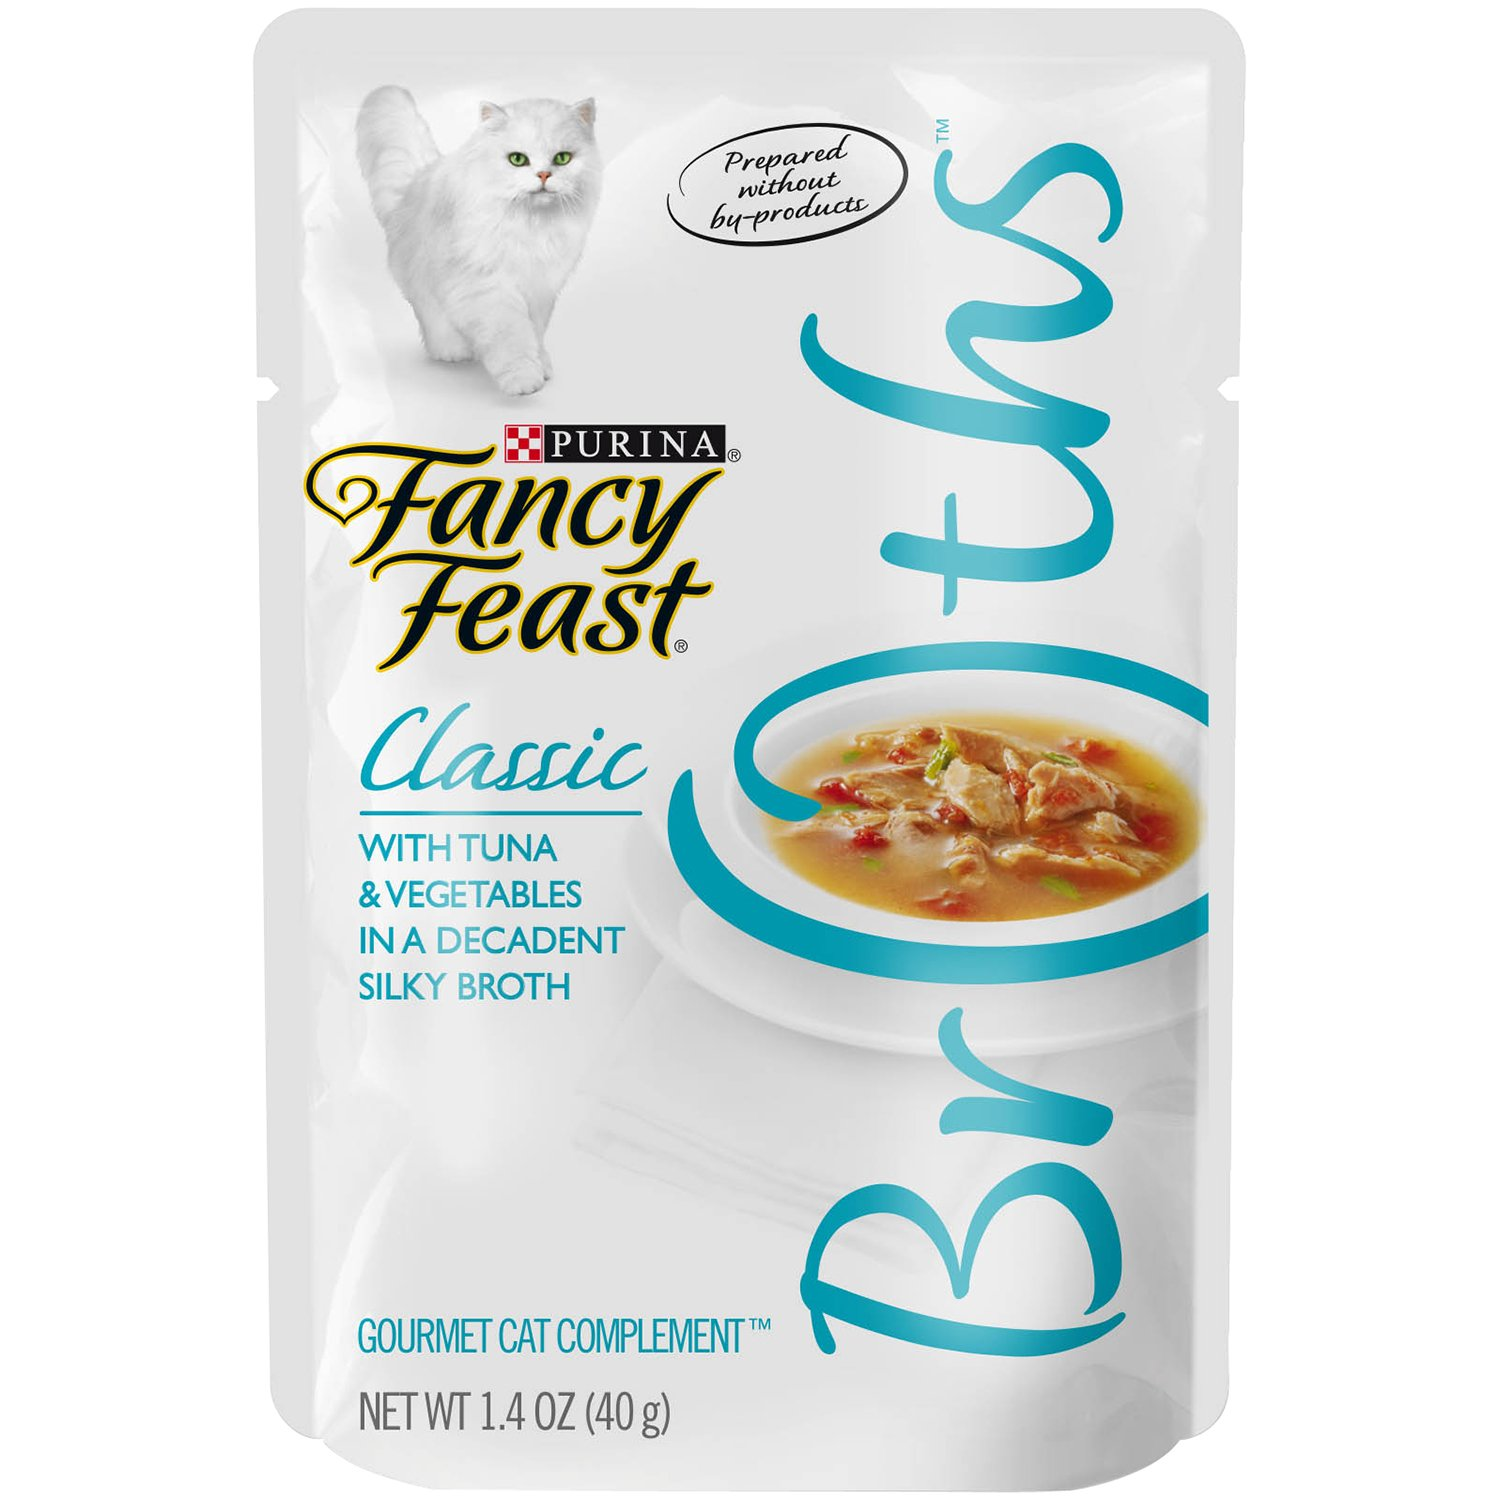 Purina Fancy Feast Classic With Tuna & Vegetables Cat Food - (32) 1.4 Oz. Pouch by Purina Fancy Feast